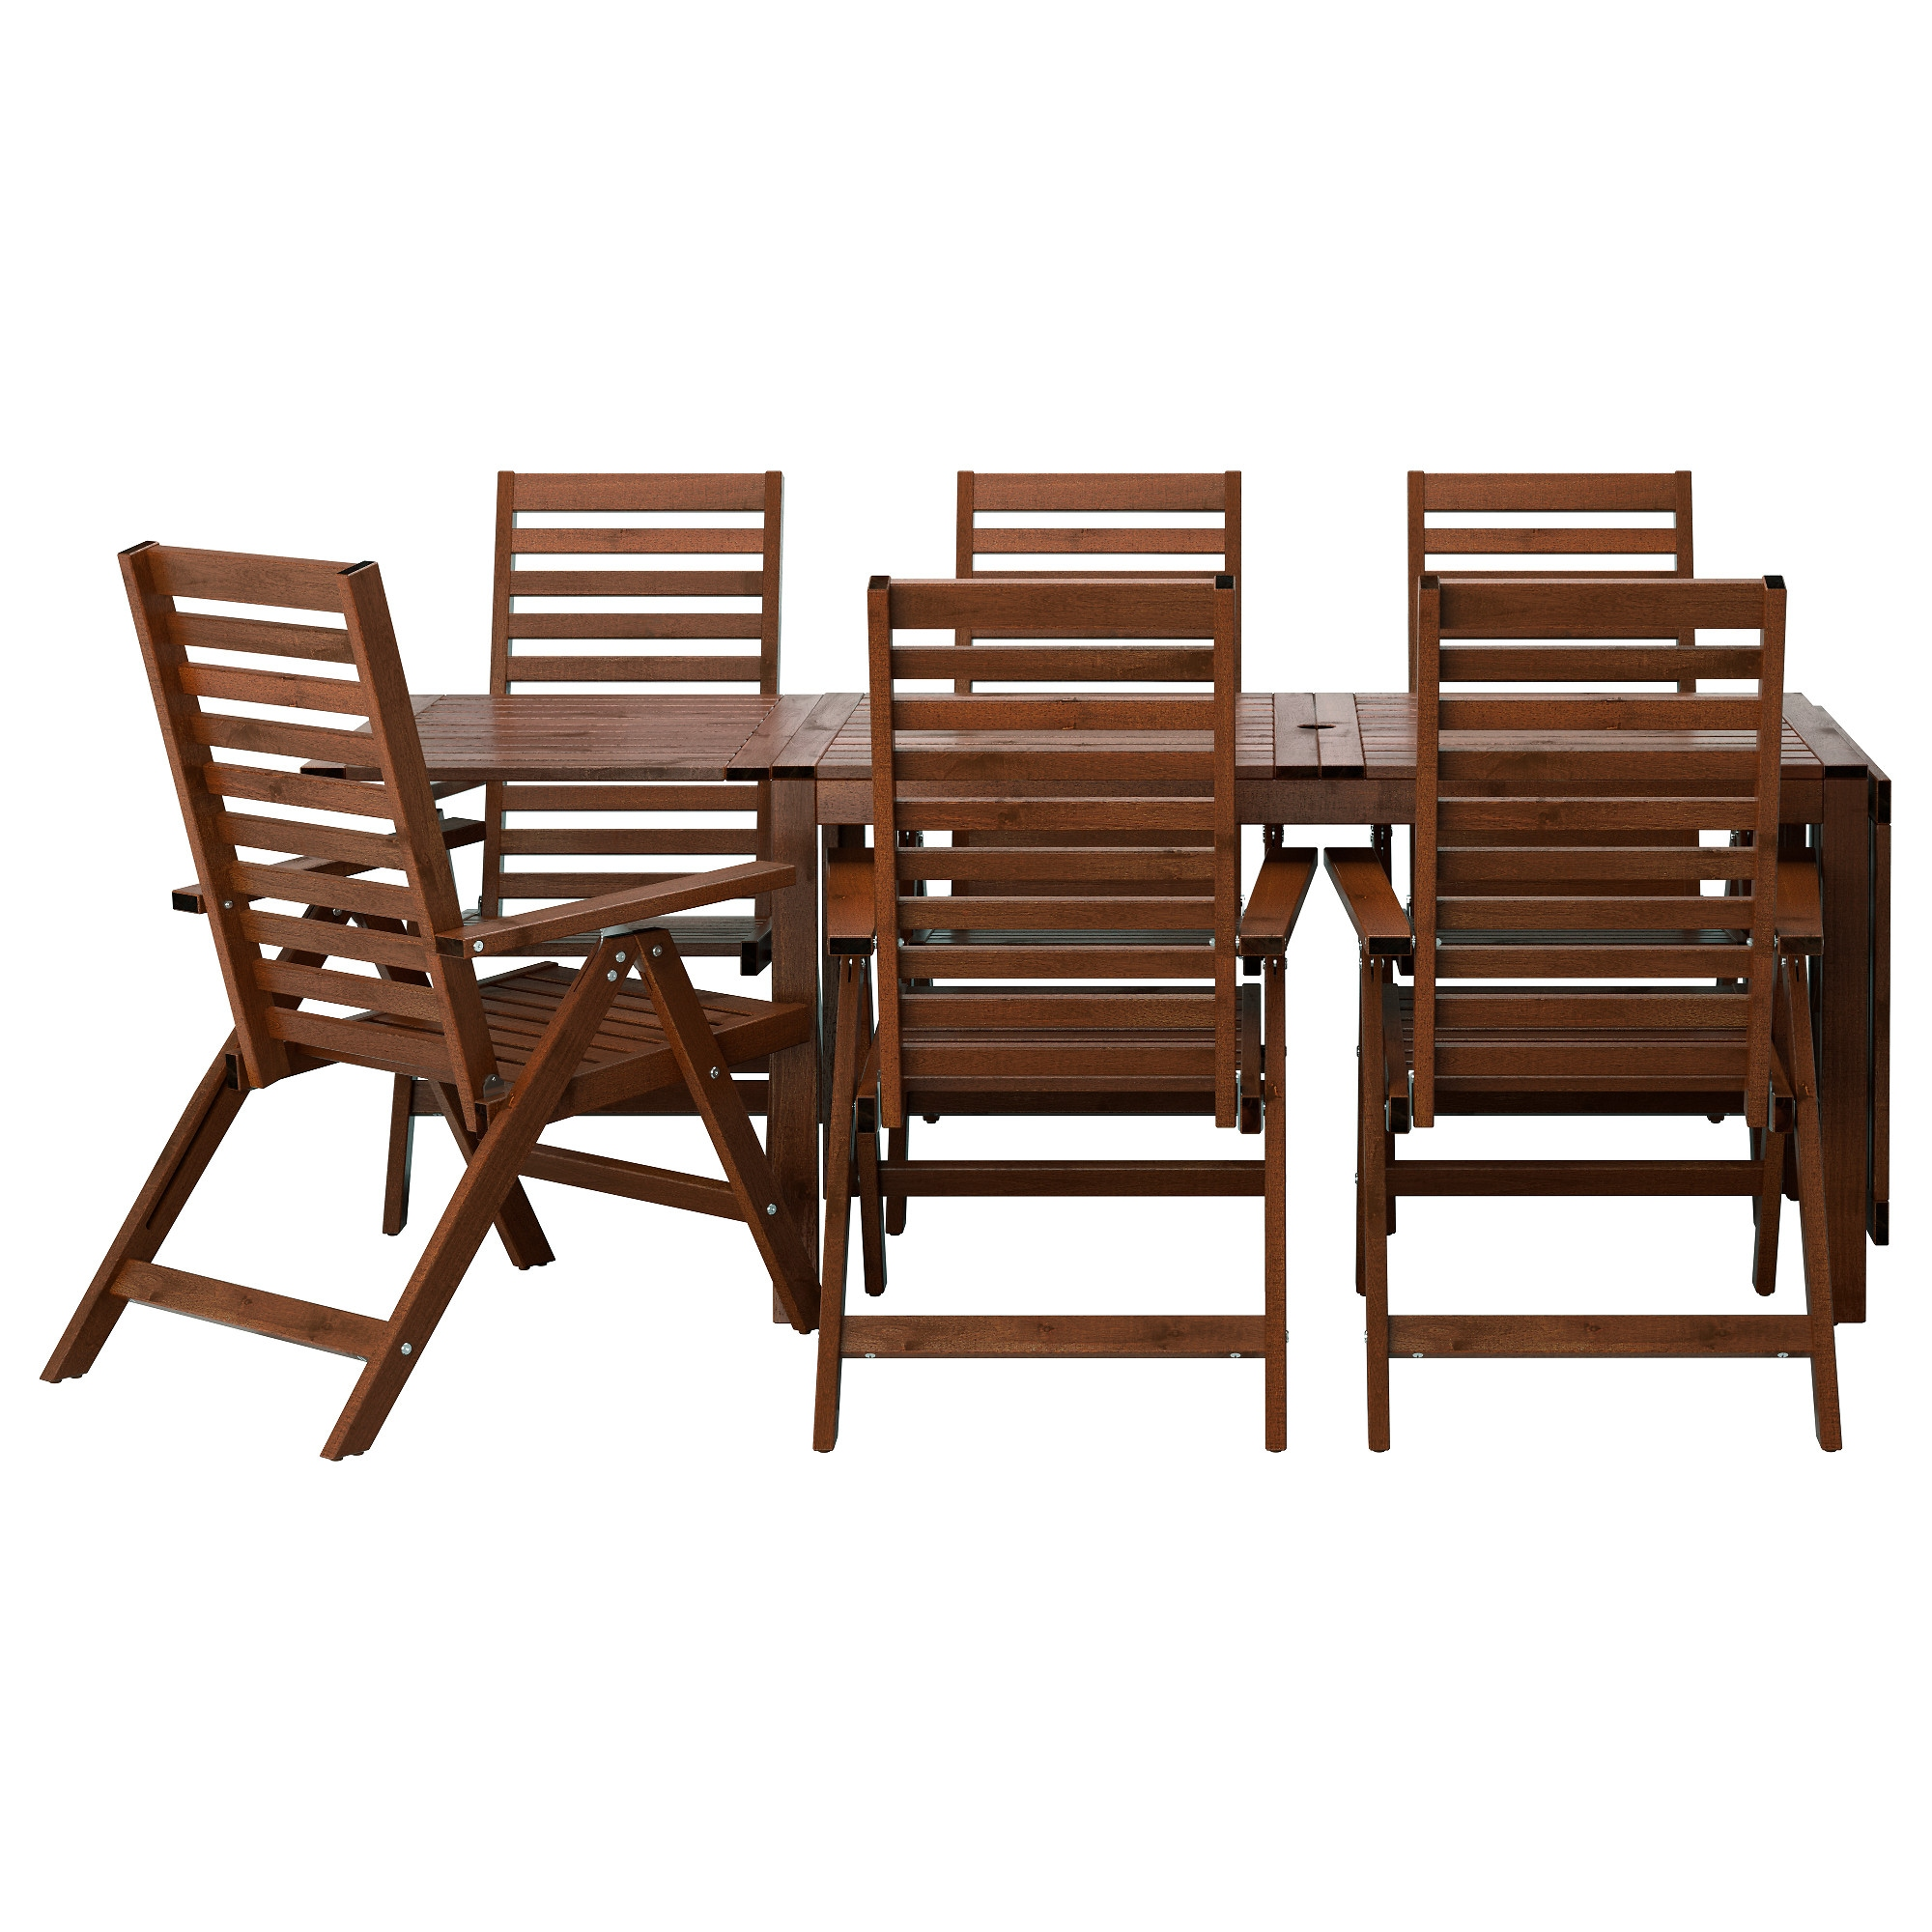 Outdoor Wood Dining Furniture outdoor dining furniture, dining chairs & dining sets - ikea